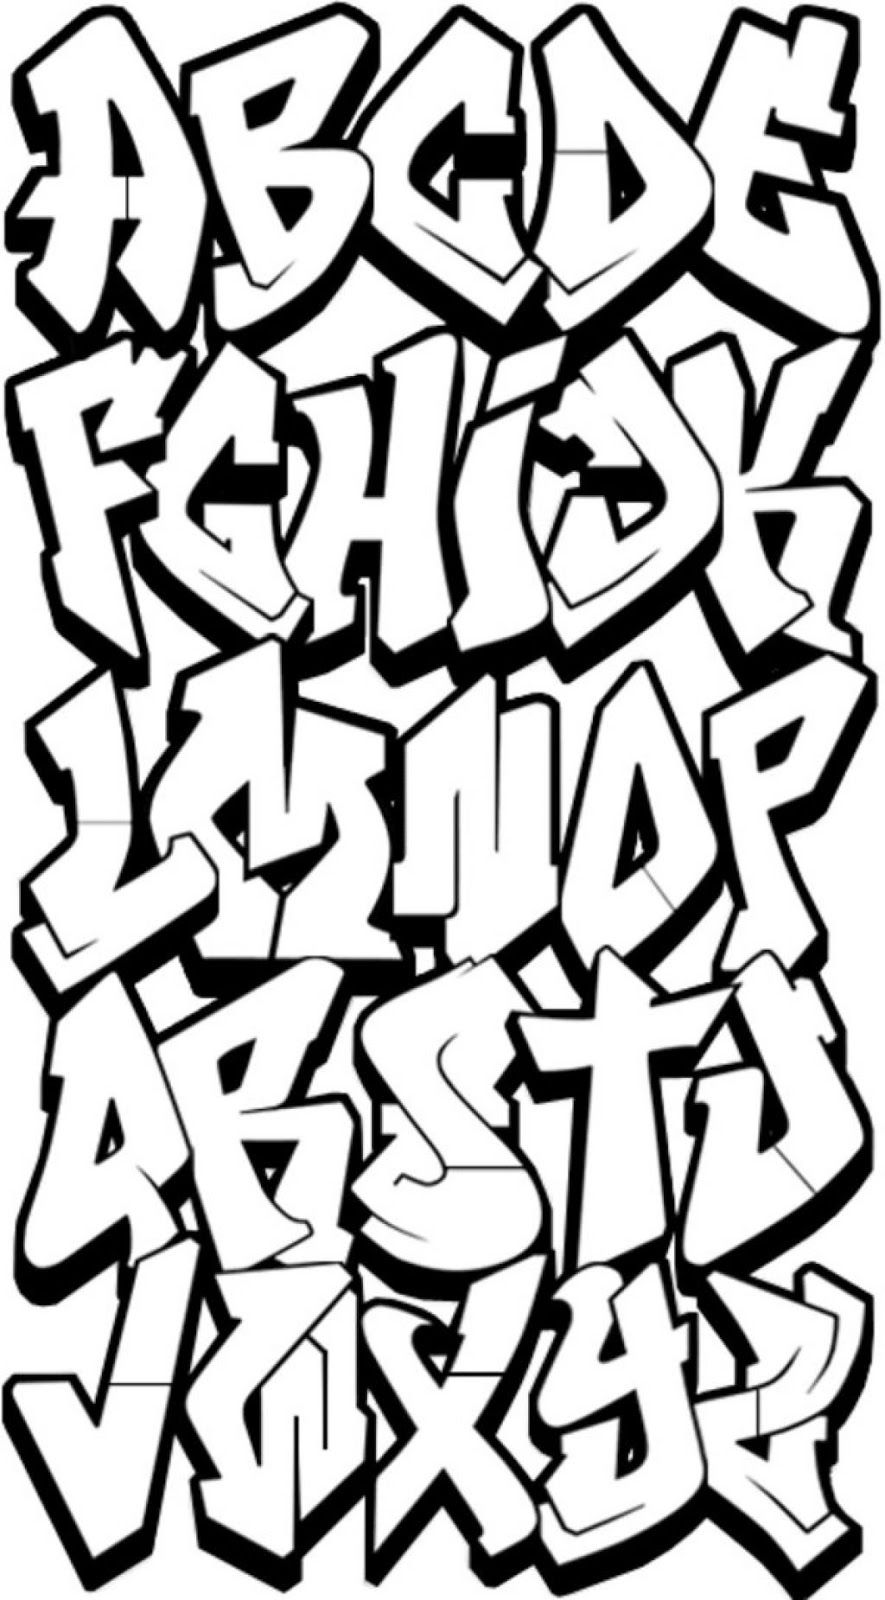 Graffiti Tags A-Z